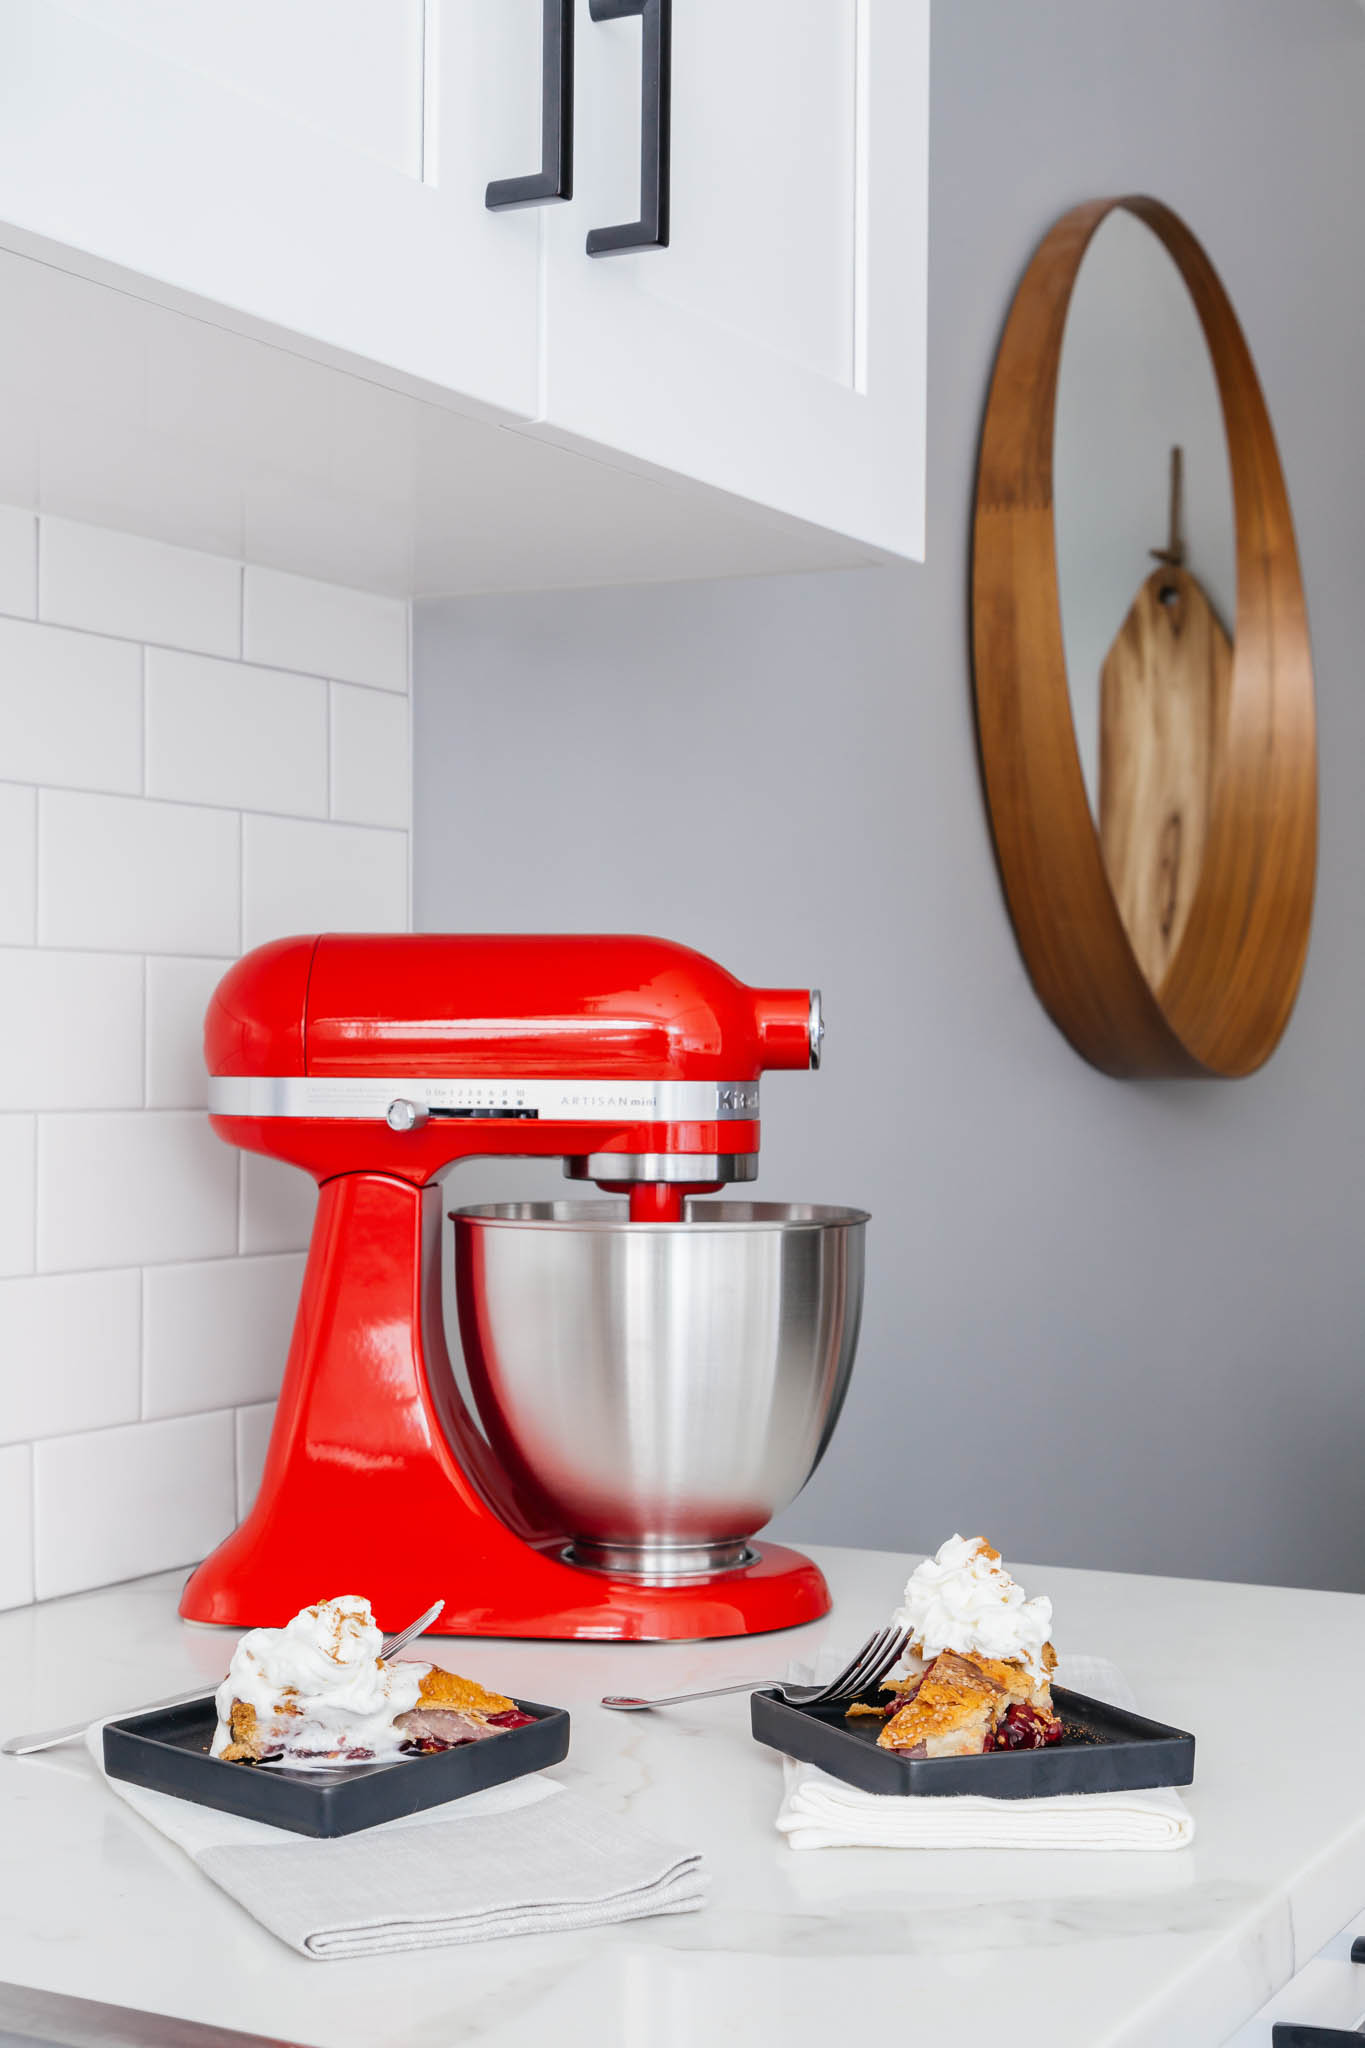 20161022_Glimenakis_KitchenAid-015.jpg